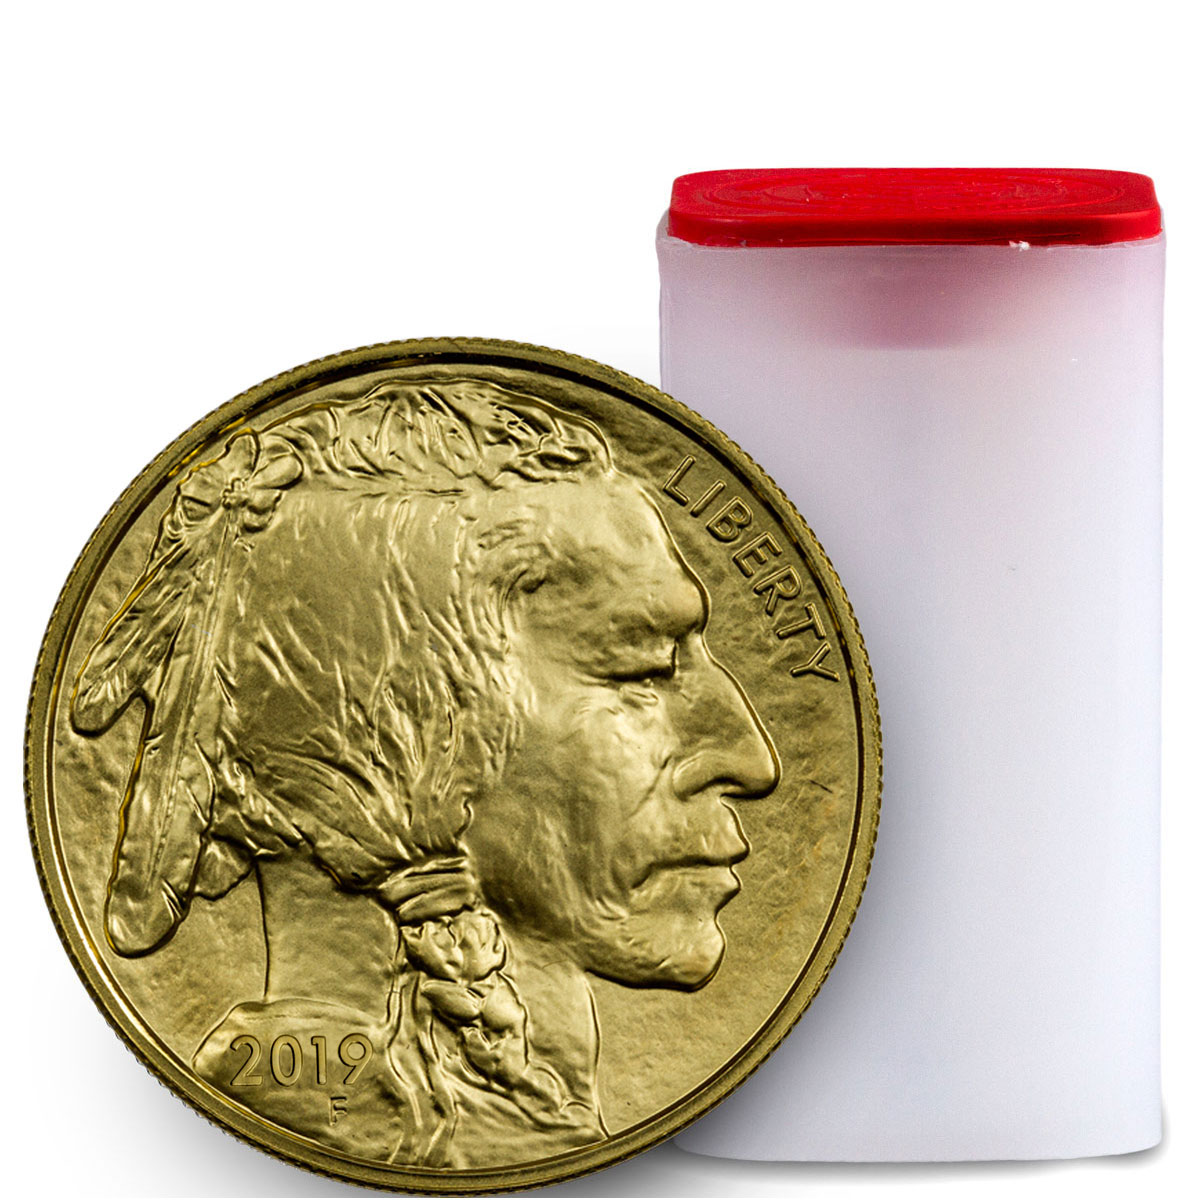 Roll of 20 - 2019 1 oz Gold Buffalo $50 Coins GEM BU